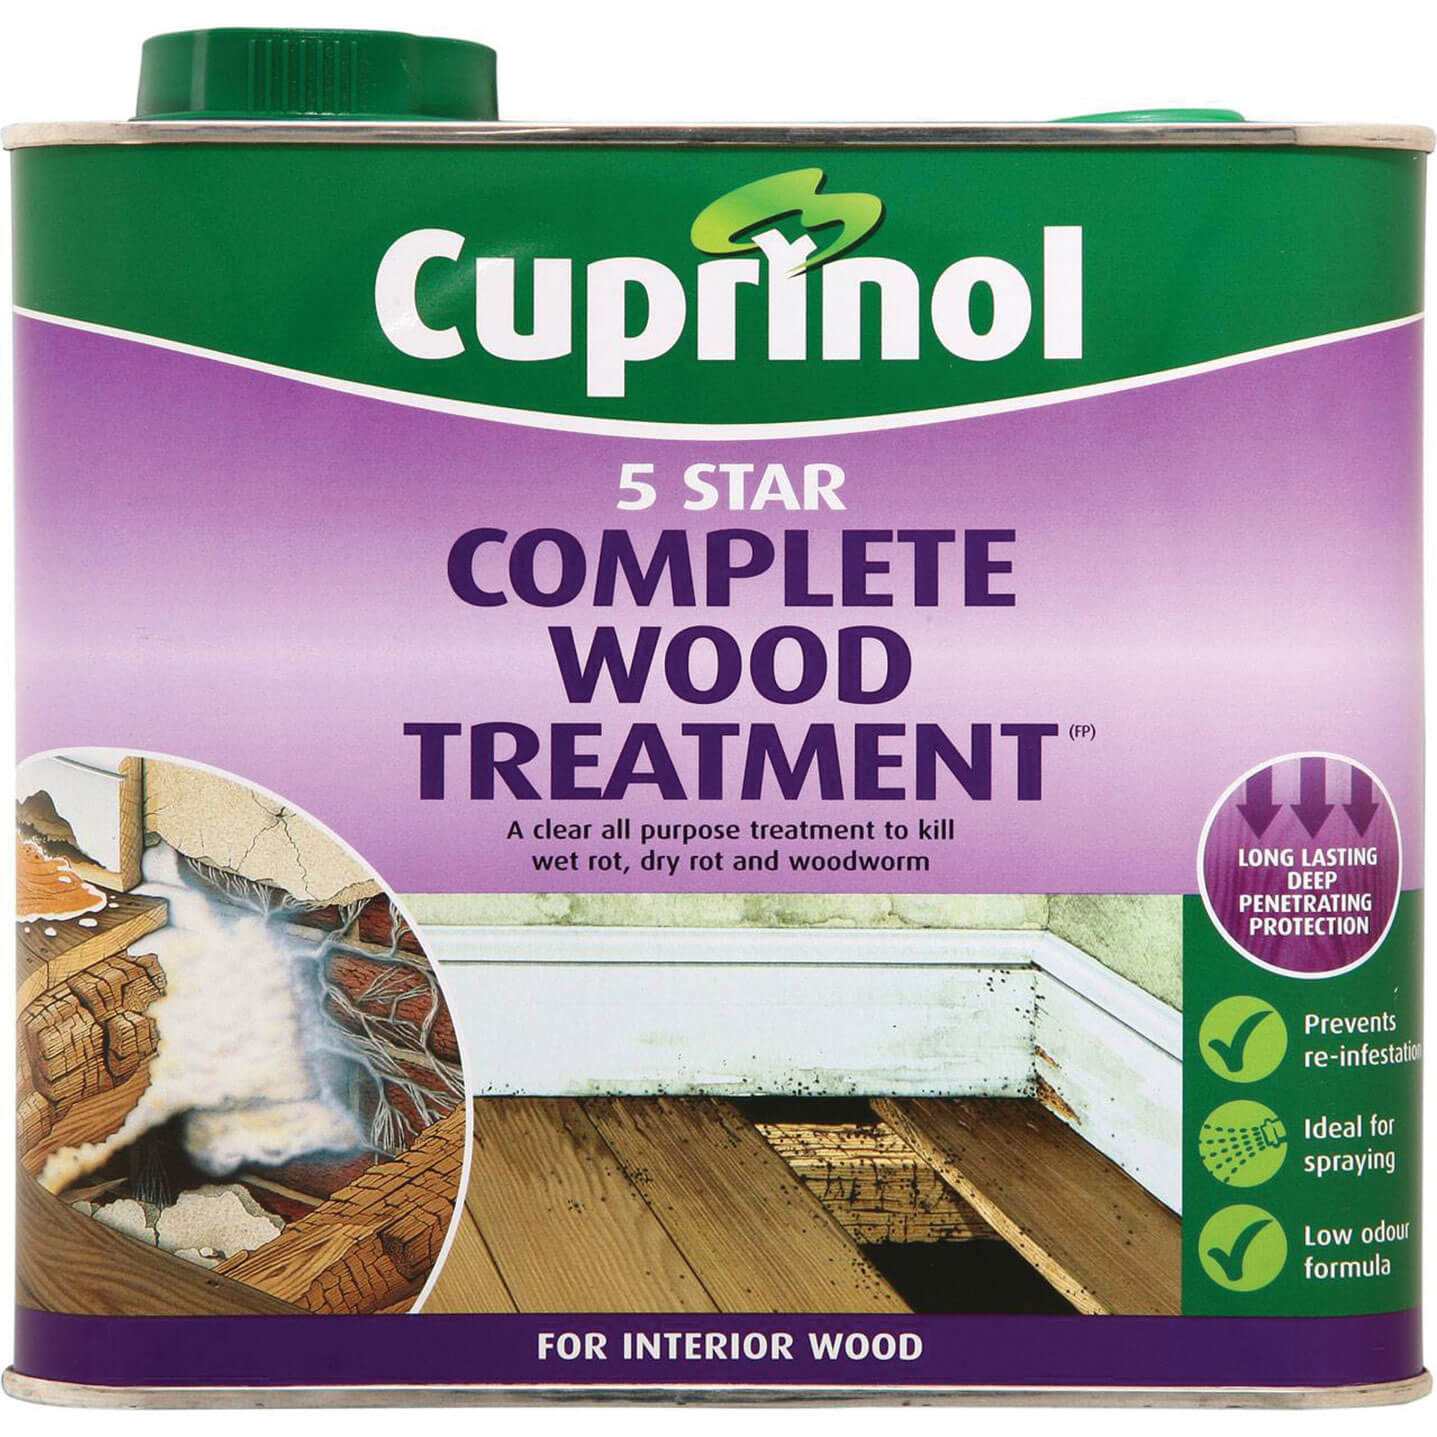 Cuprinol 5 Star Complete Wood Treatment for Interior Use 2.5L